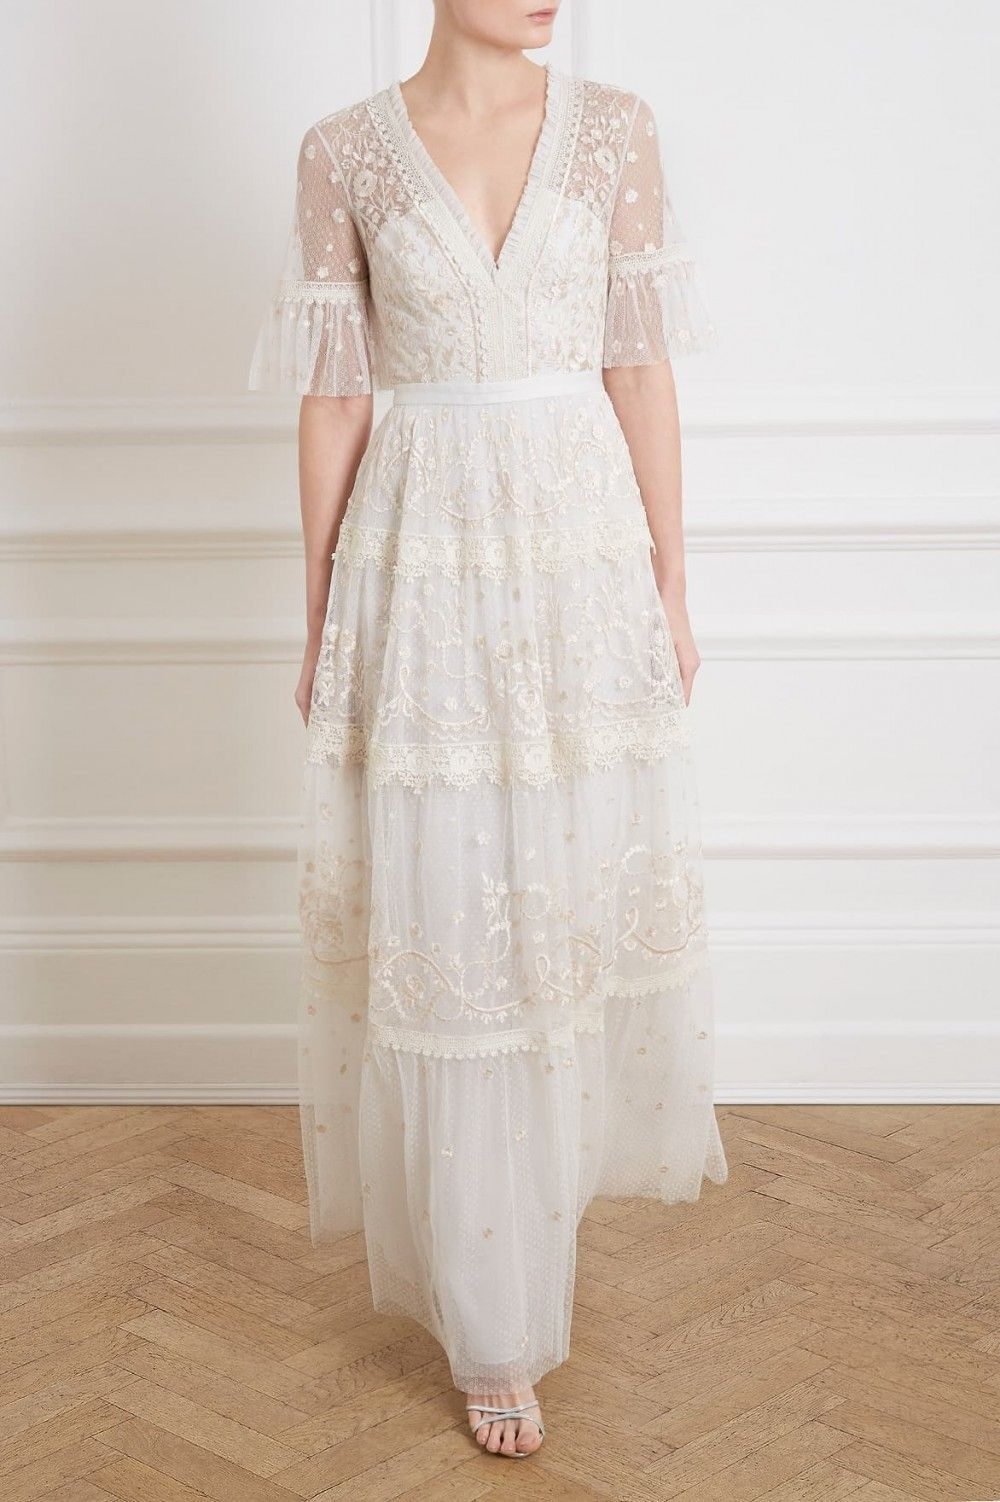 Midsummer Lace Gown in Ivory from Needle & Thread's New